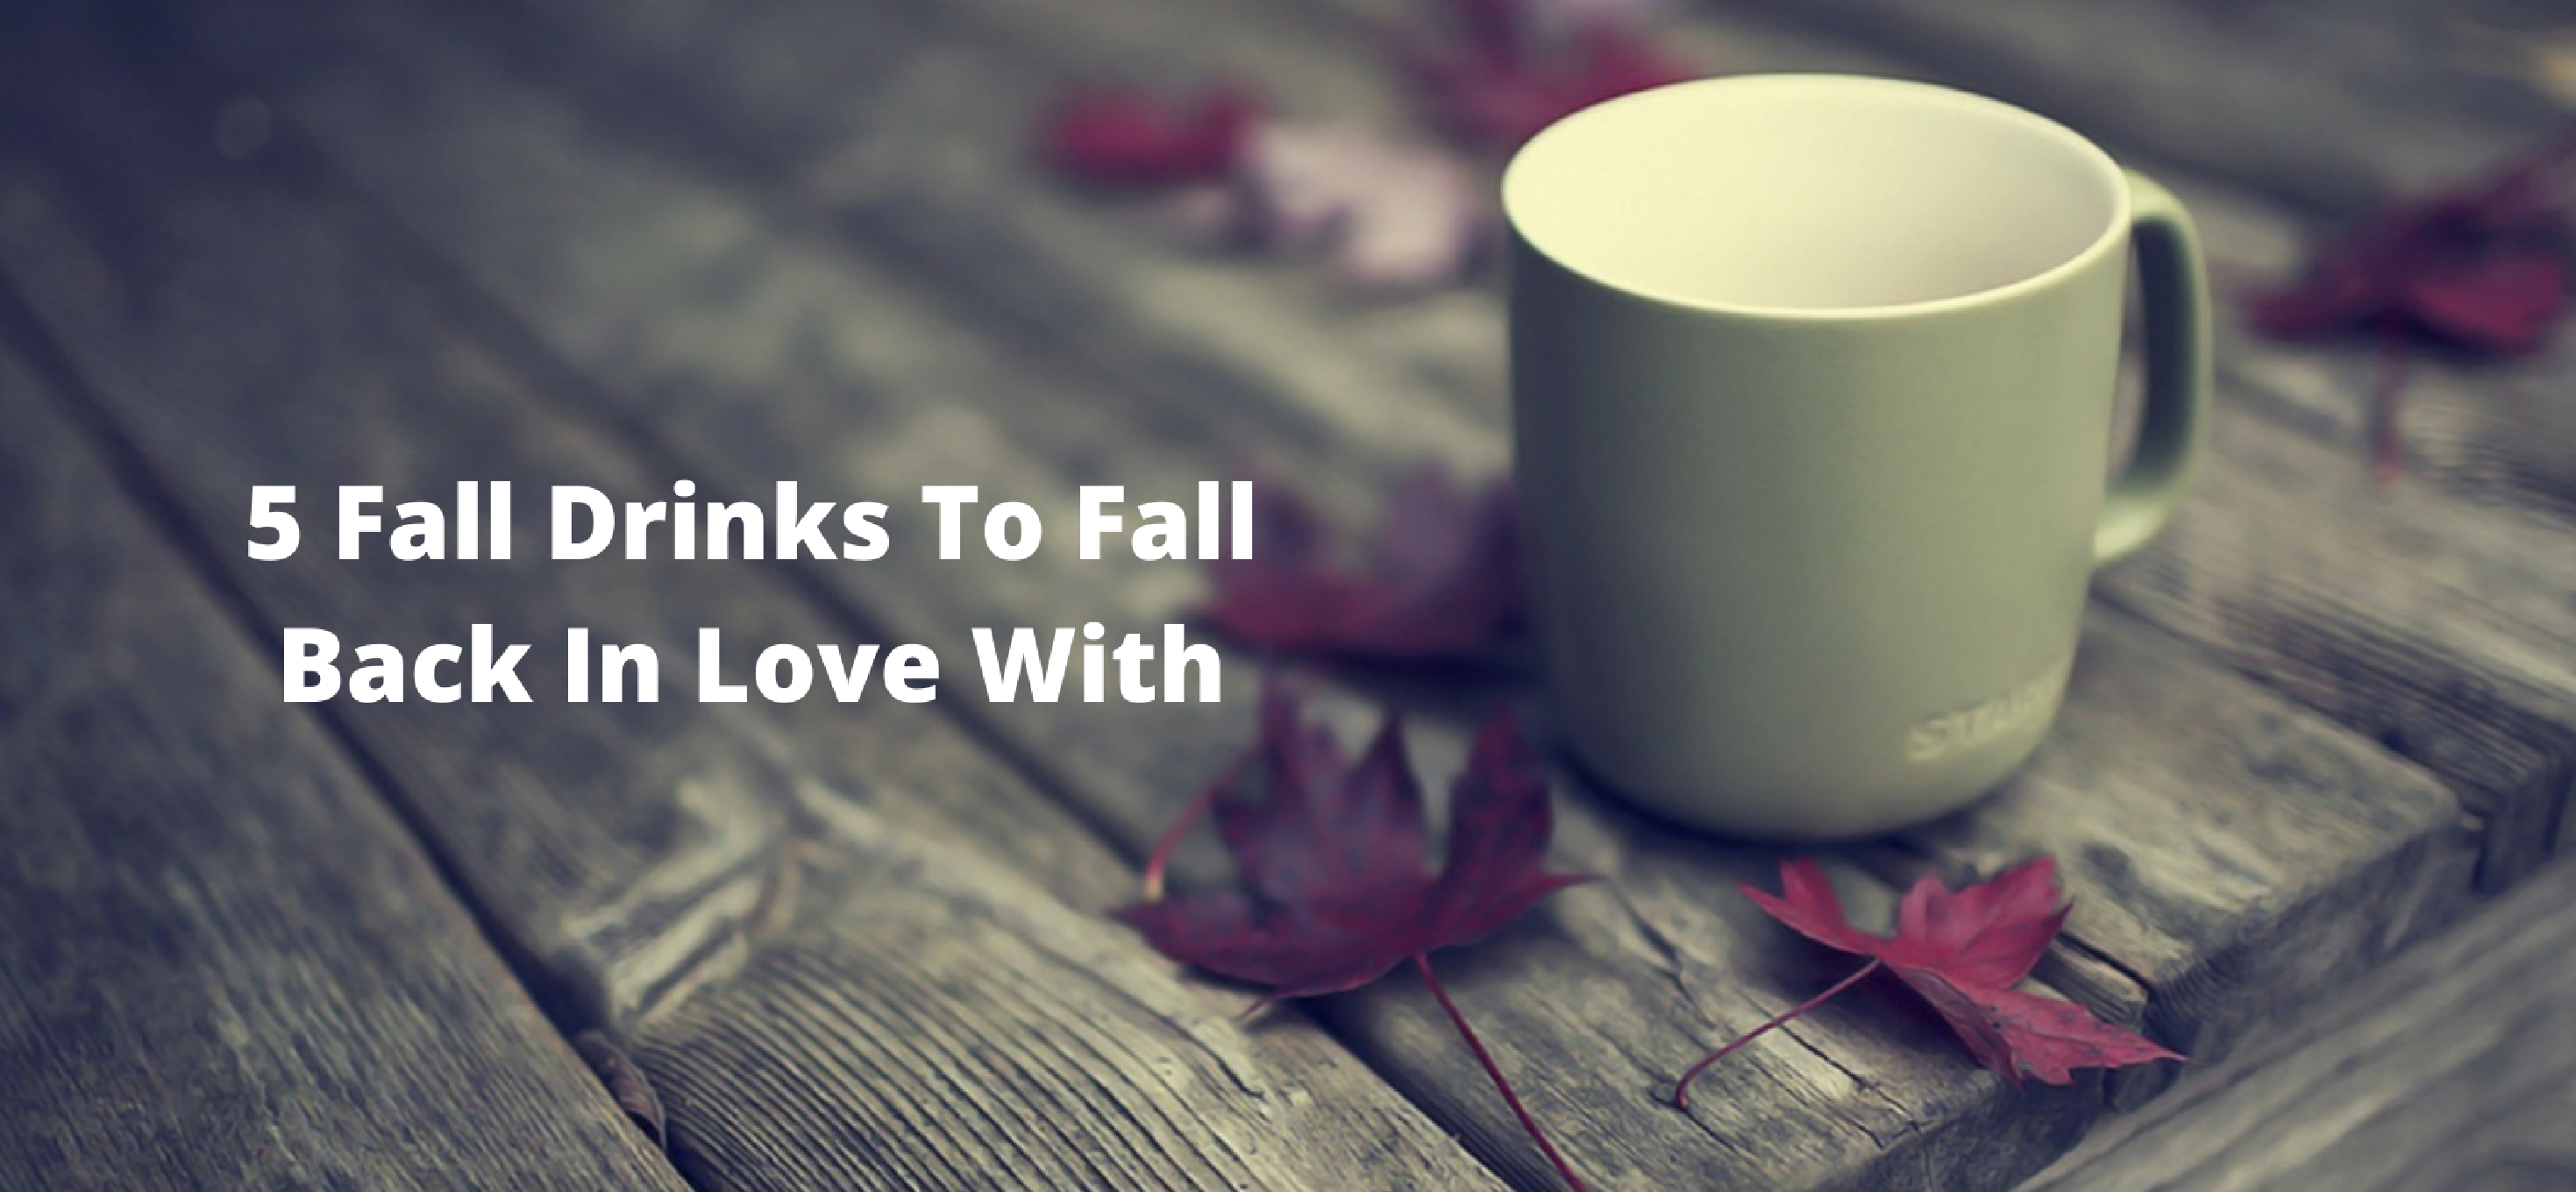 5 Fall Drinks to Fall Back in Love With